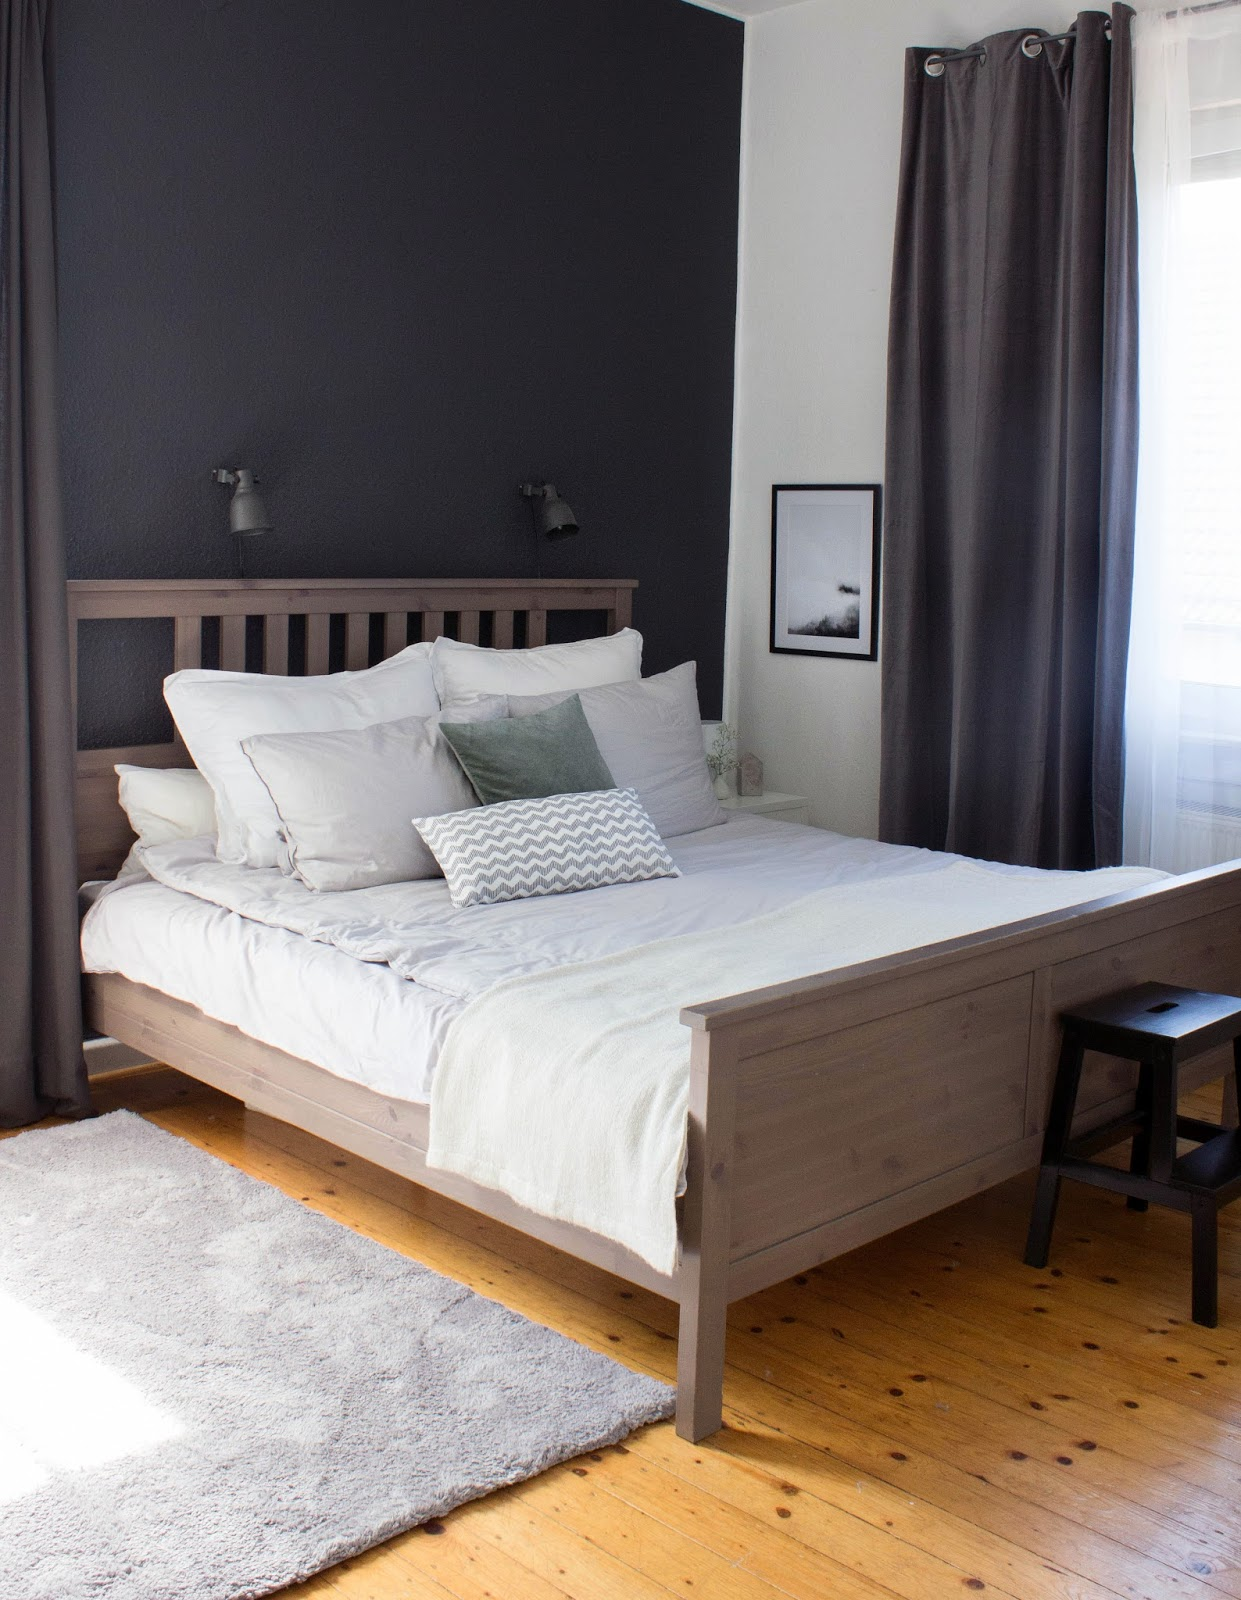 schlafzimmer makeover meine tipps maditas haus lifestyle und interior blog. Black Bedroom Furniture Sets. Home Design Ideas